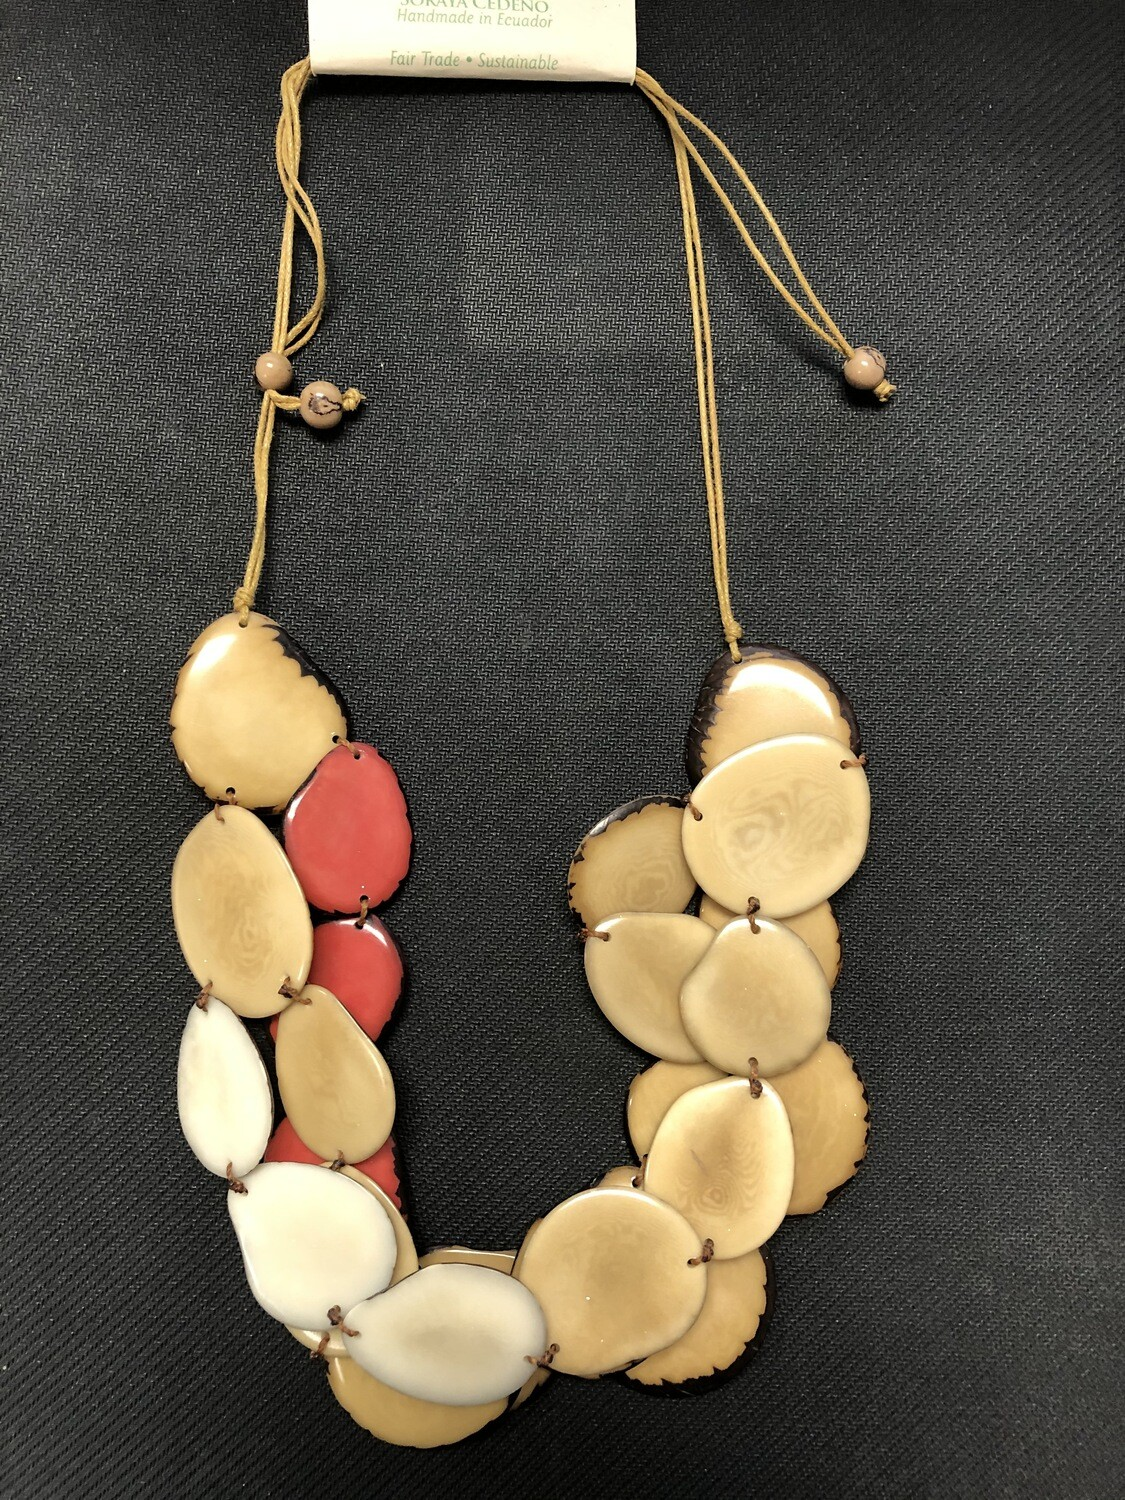 Tagua hecklace adjustable, red, tan and ivory